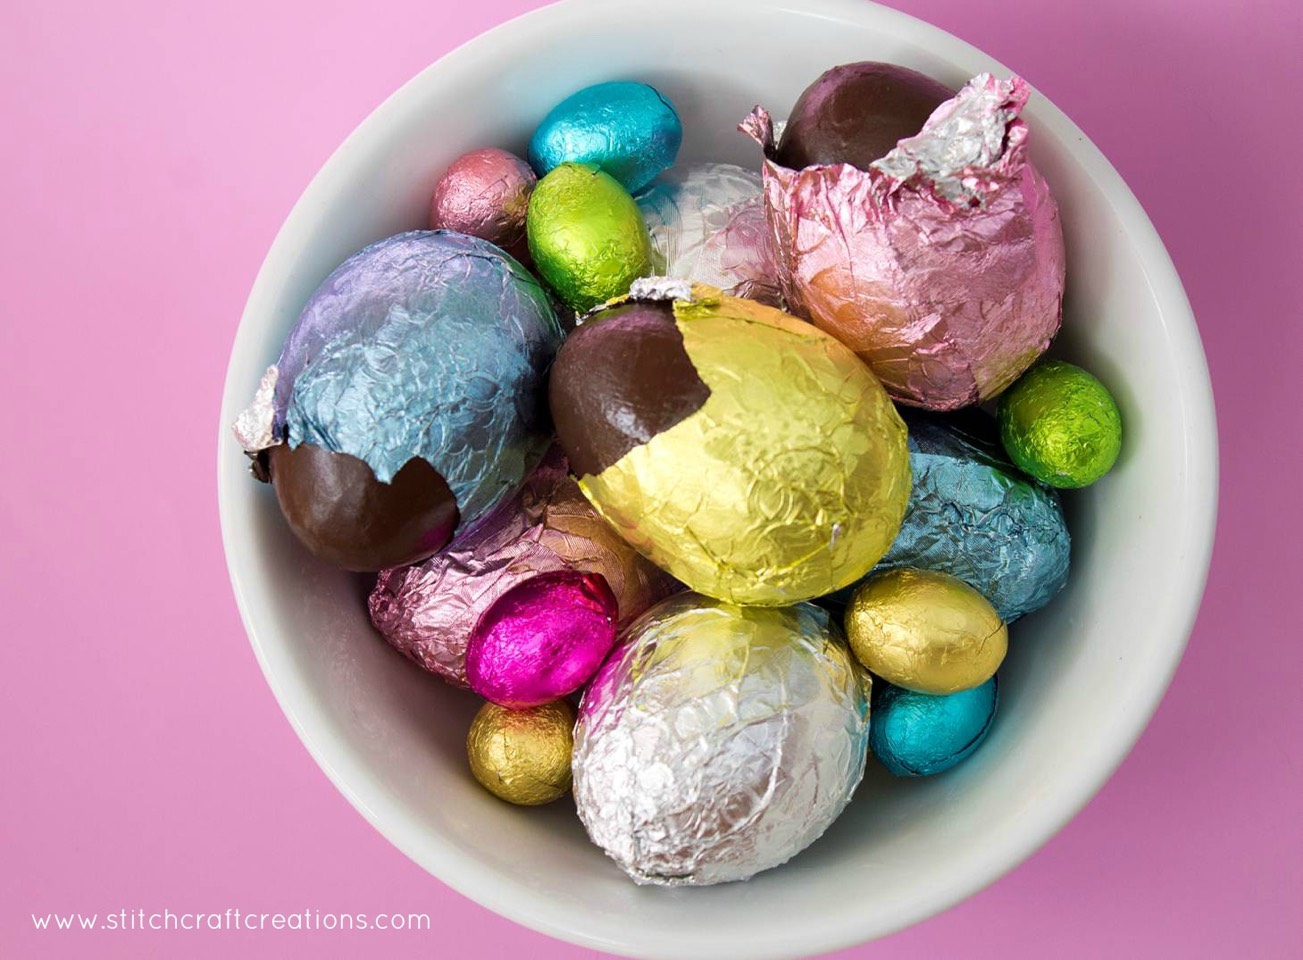 4. Carefully un-mould the egg halves and place on a clean surface. Take care not to handle the chocolate too much as it will start to melt from the heat of your hands.